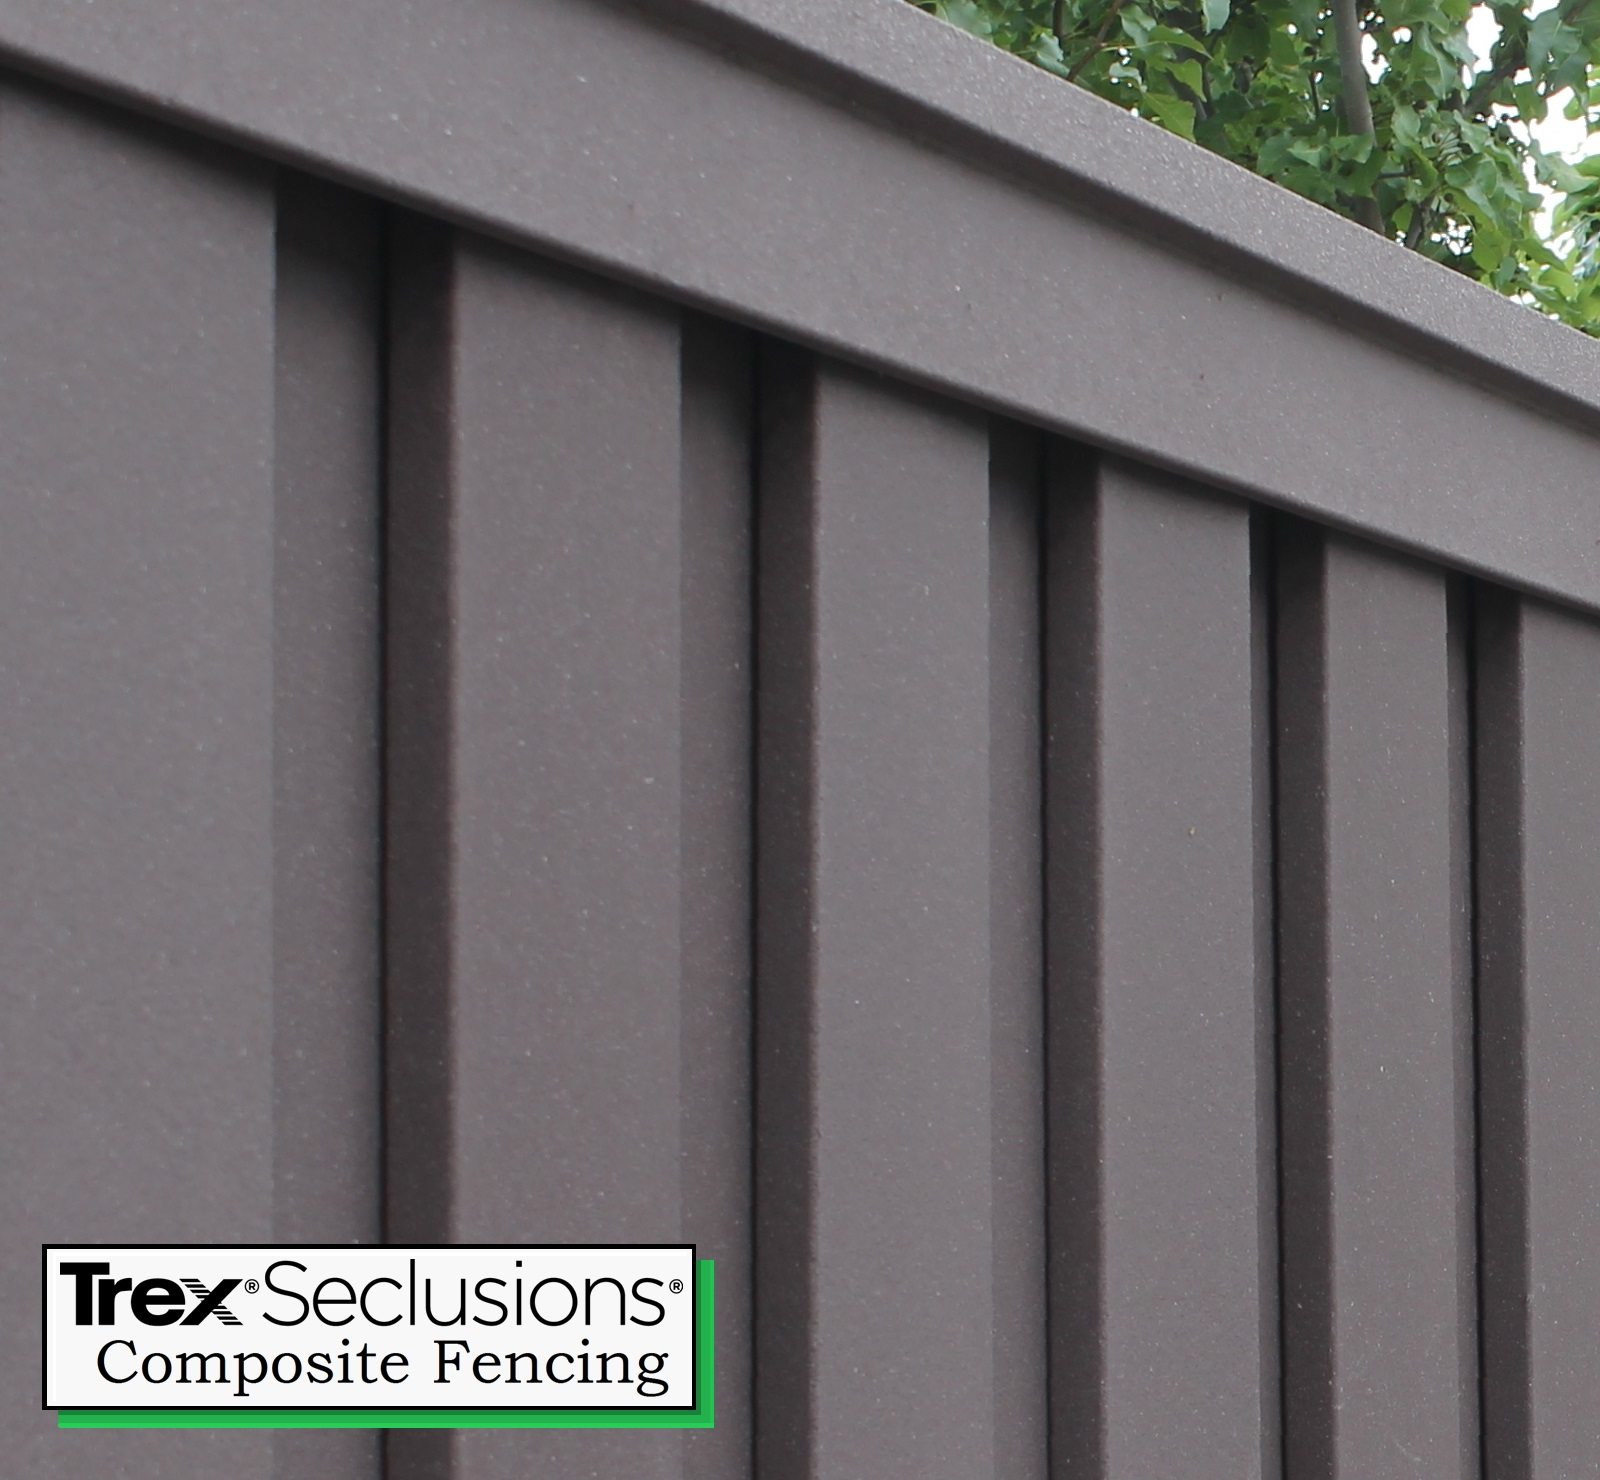 Kelleyfencesellers author at trex fencing the composite trex fencing composite pickets baanklon Choice Image